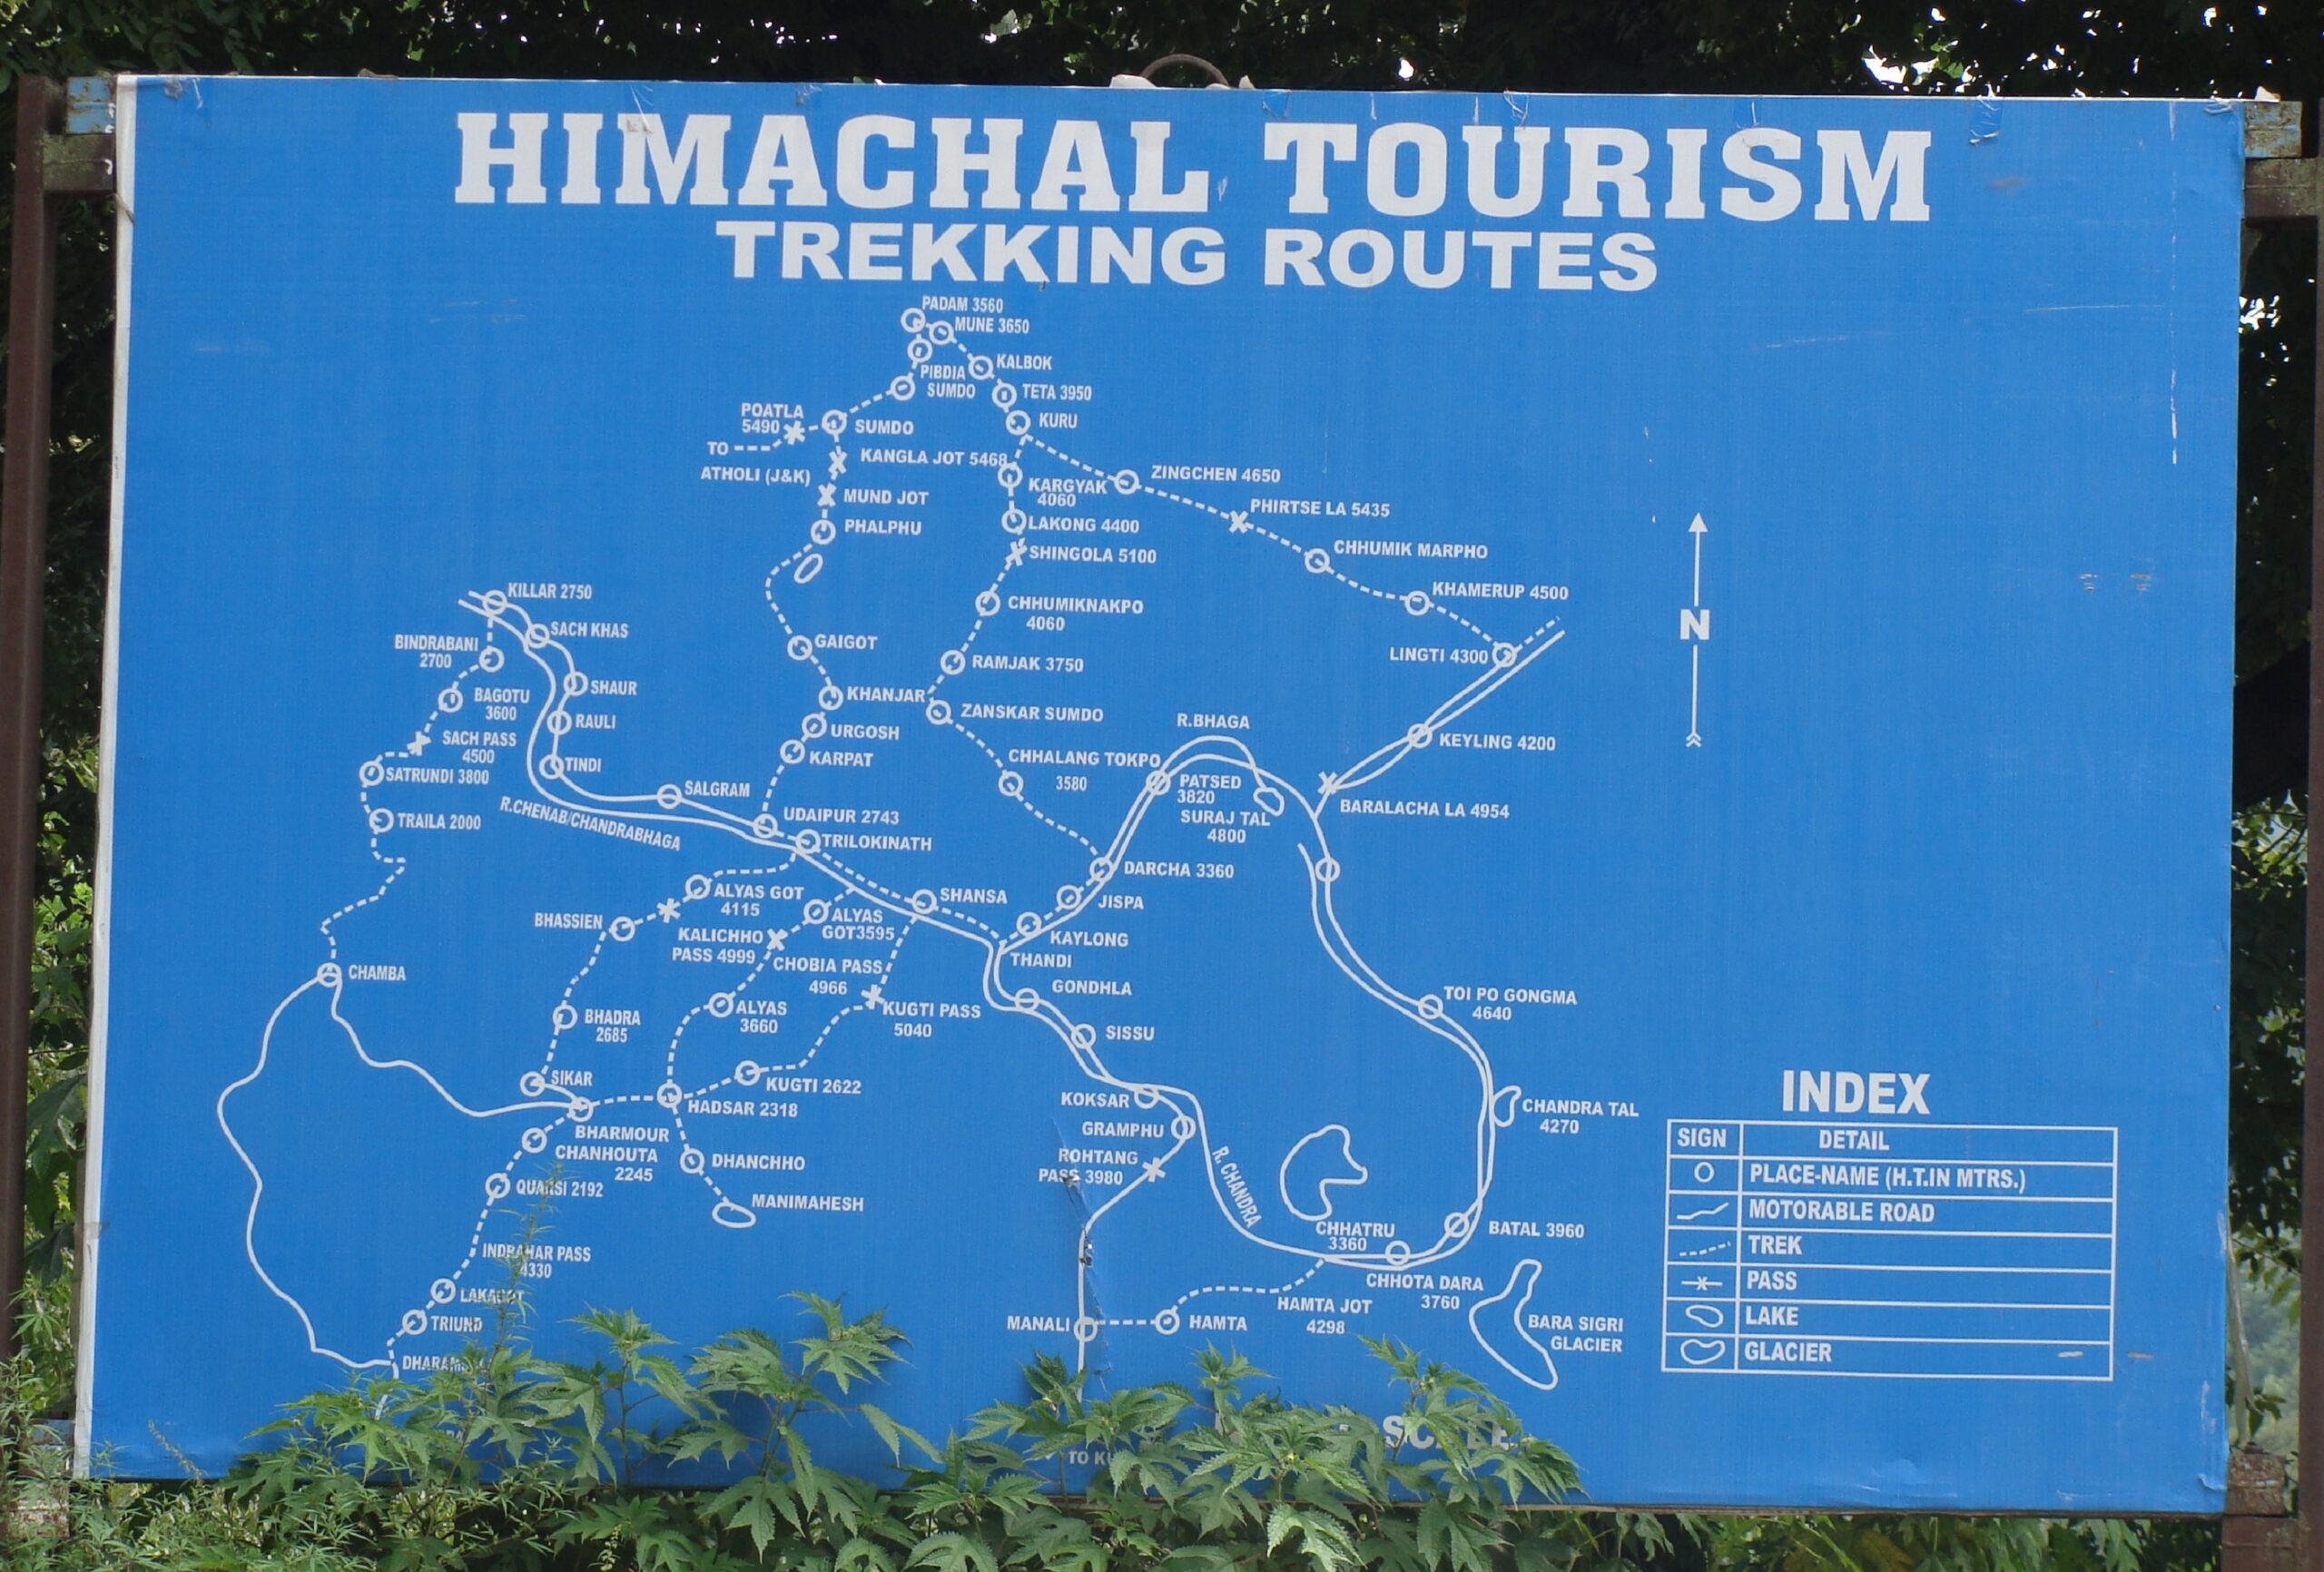 Trekking Routes in Himachal Pradesh, India